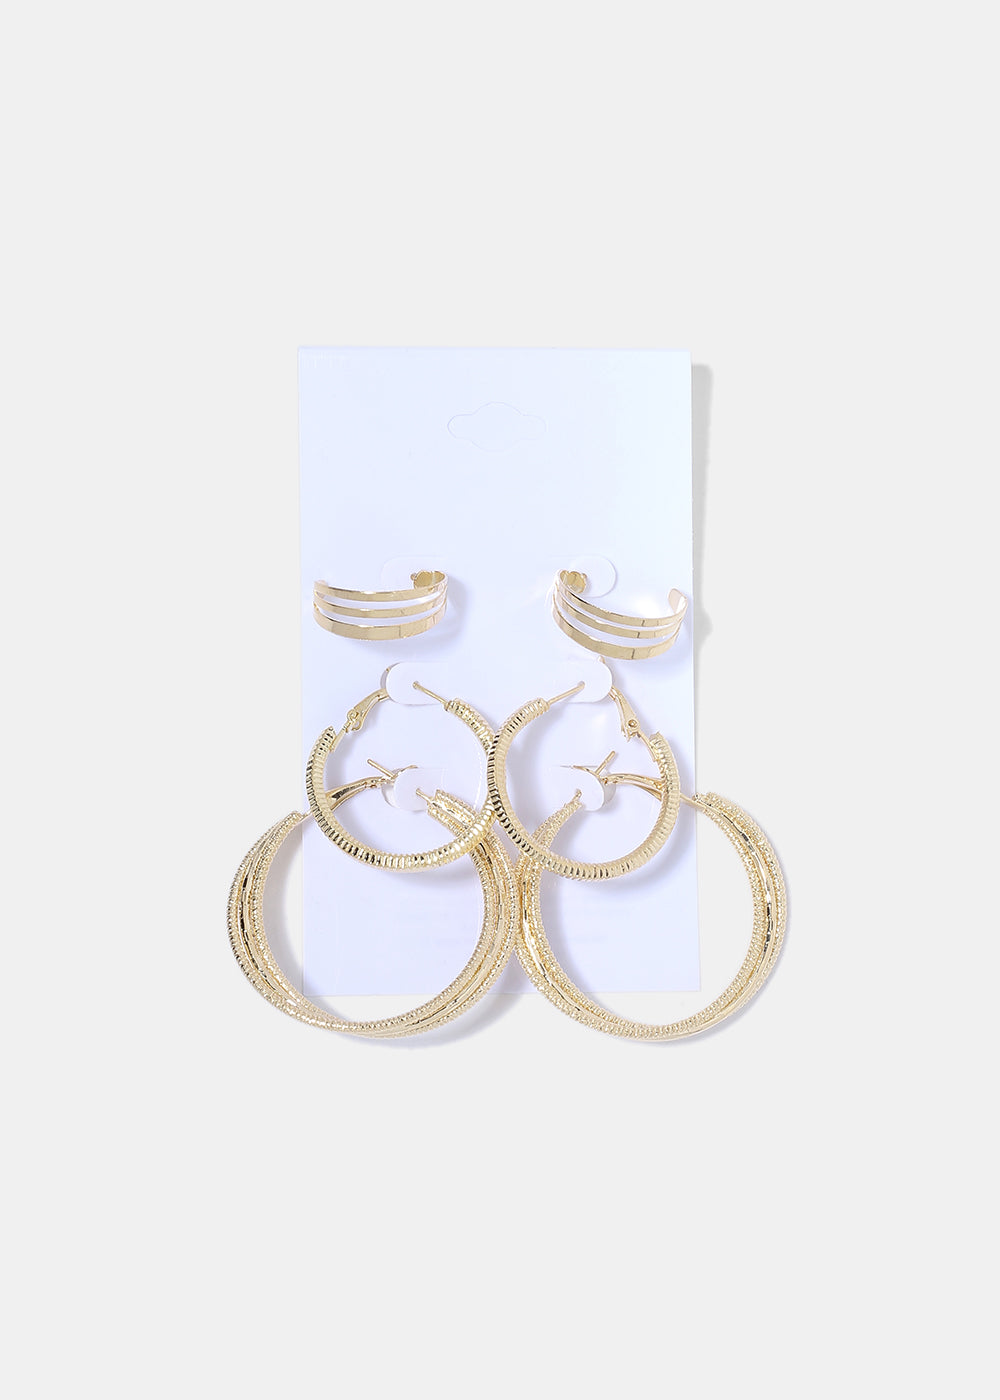 3 Pair Textured Hoop Earrings